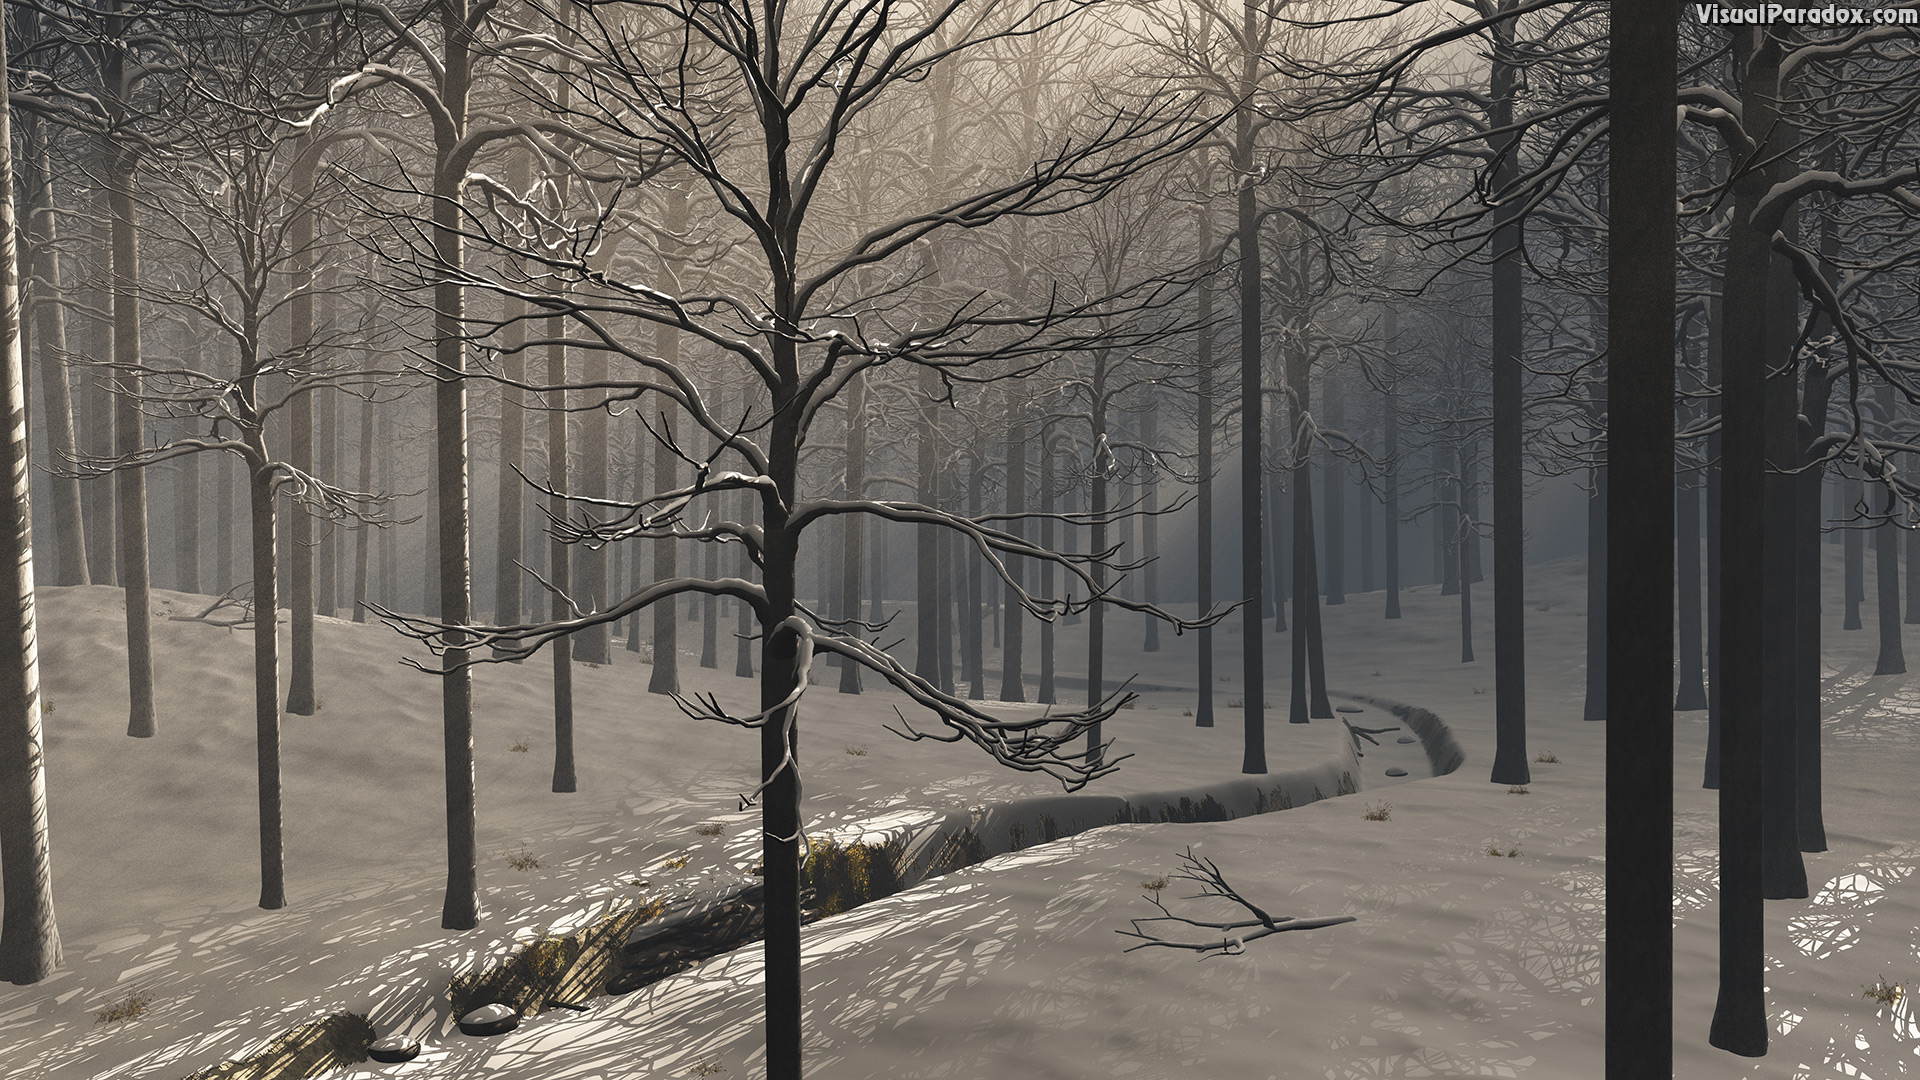 background, bar, beautiful, beauty, black, blue, branch, cold, creek, dark, elegance, elegant, environment, evil, fear, fog, foggy, forest, freezing, frozen, ground, horror, ice, landscape, light, magic, mist, misty, monochrome, mood, morning, mystery, nature, night, peaceful, quiet, ray, rays, scene, scenic, season, serene, shadow, silent, snow, snowy, spooky, sun, tranquil, tree, weather, white, winter, wood, 3d, wallpaper